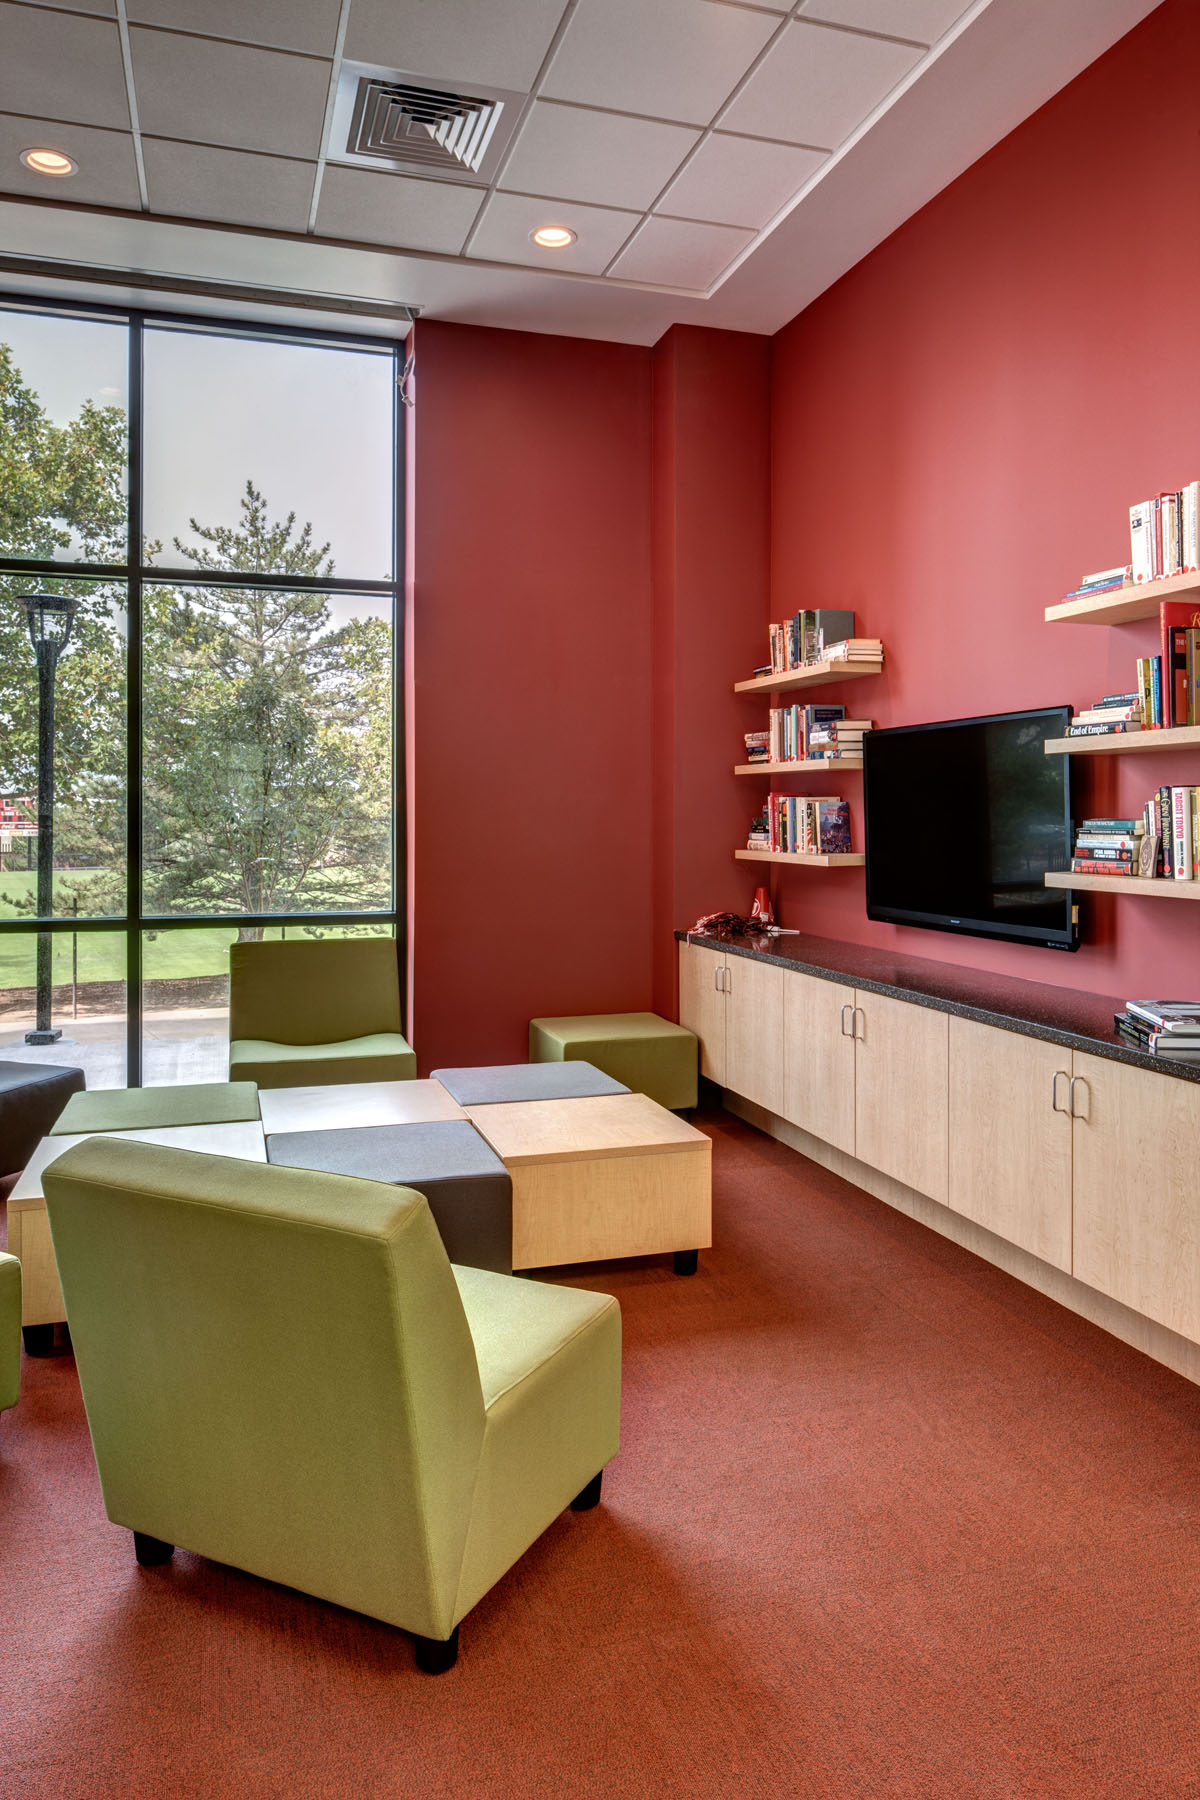 A red entertainment room with green chairs and ottoman squares give students a place to read or watch TV in the honors student housing building.